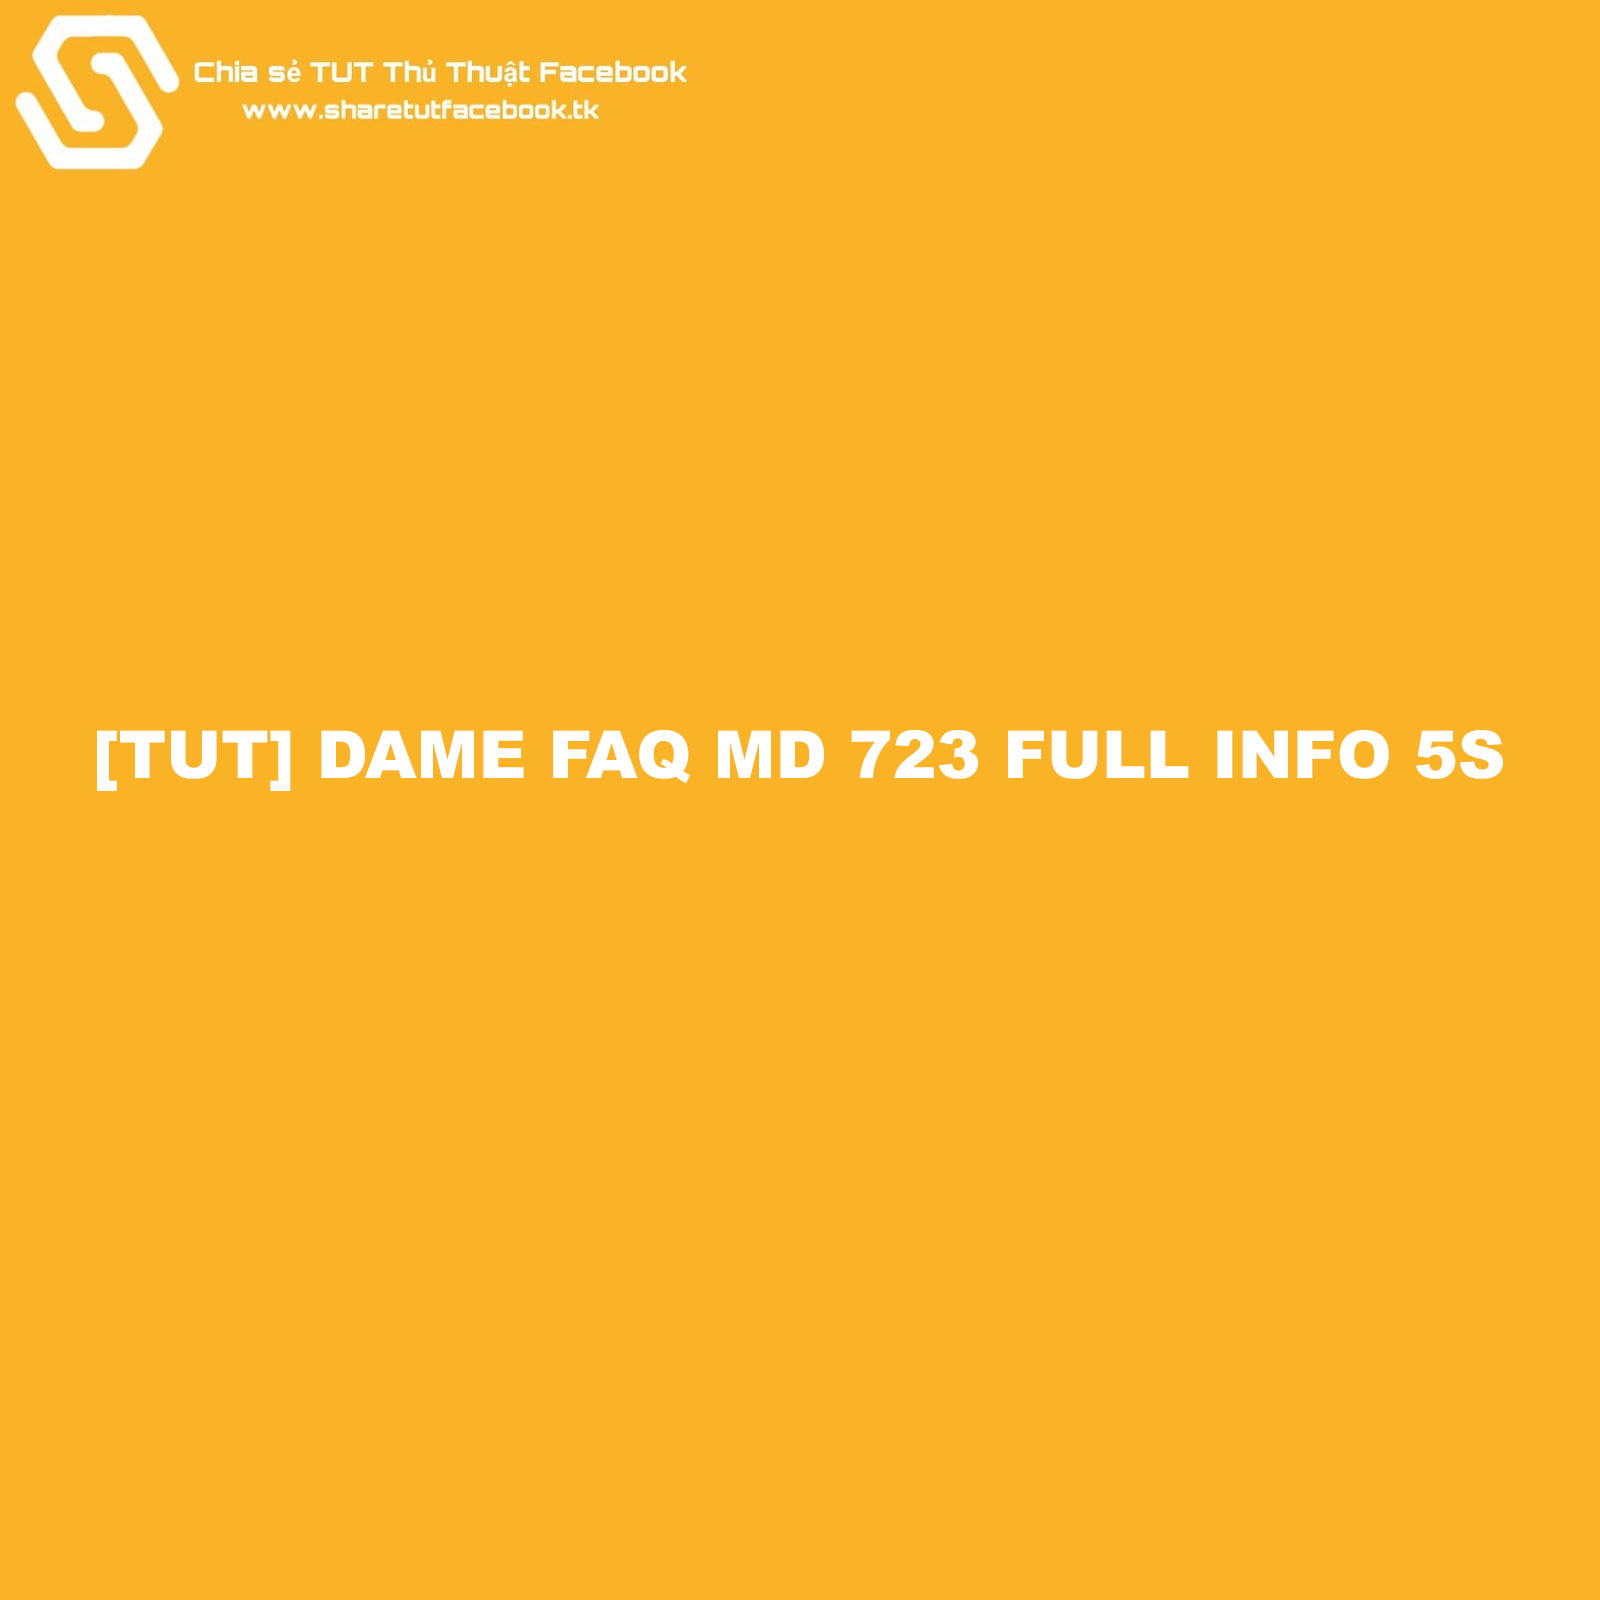 tut rip faq md 5s, tut report faq md full info die 5s, tut rip 723 apps, facebook 723 rip 5s, tut dame faq md 5s, tut hack 723 faq md 5s